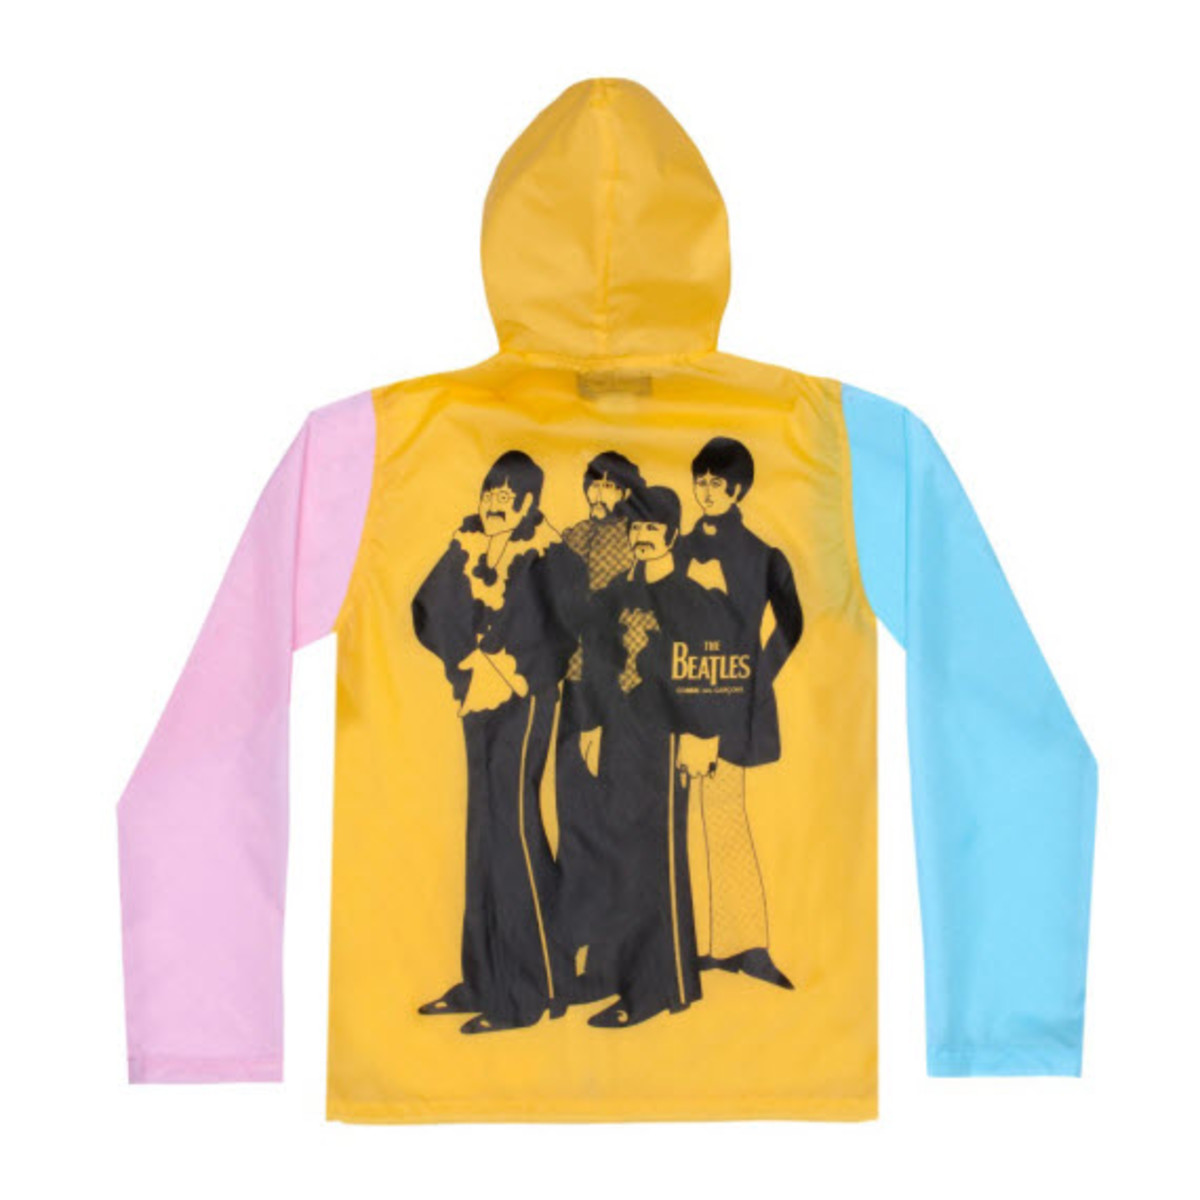 comme-des-garcons-x-the-beatles-the-beatles-springsummer-2013-capsule-collection-8